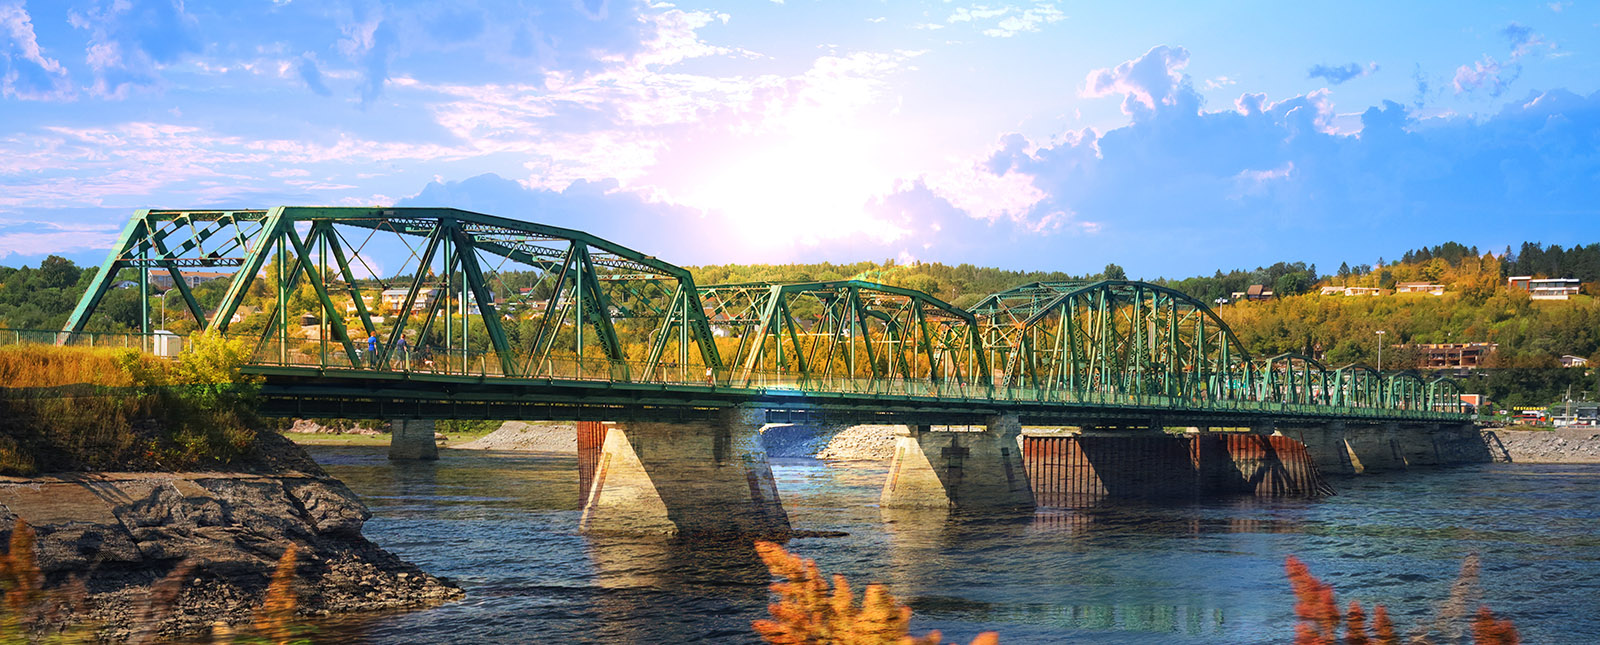 Old Saguenay Bridge and River - Royalty-Free Stock Imagery